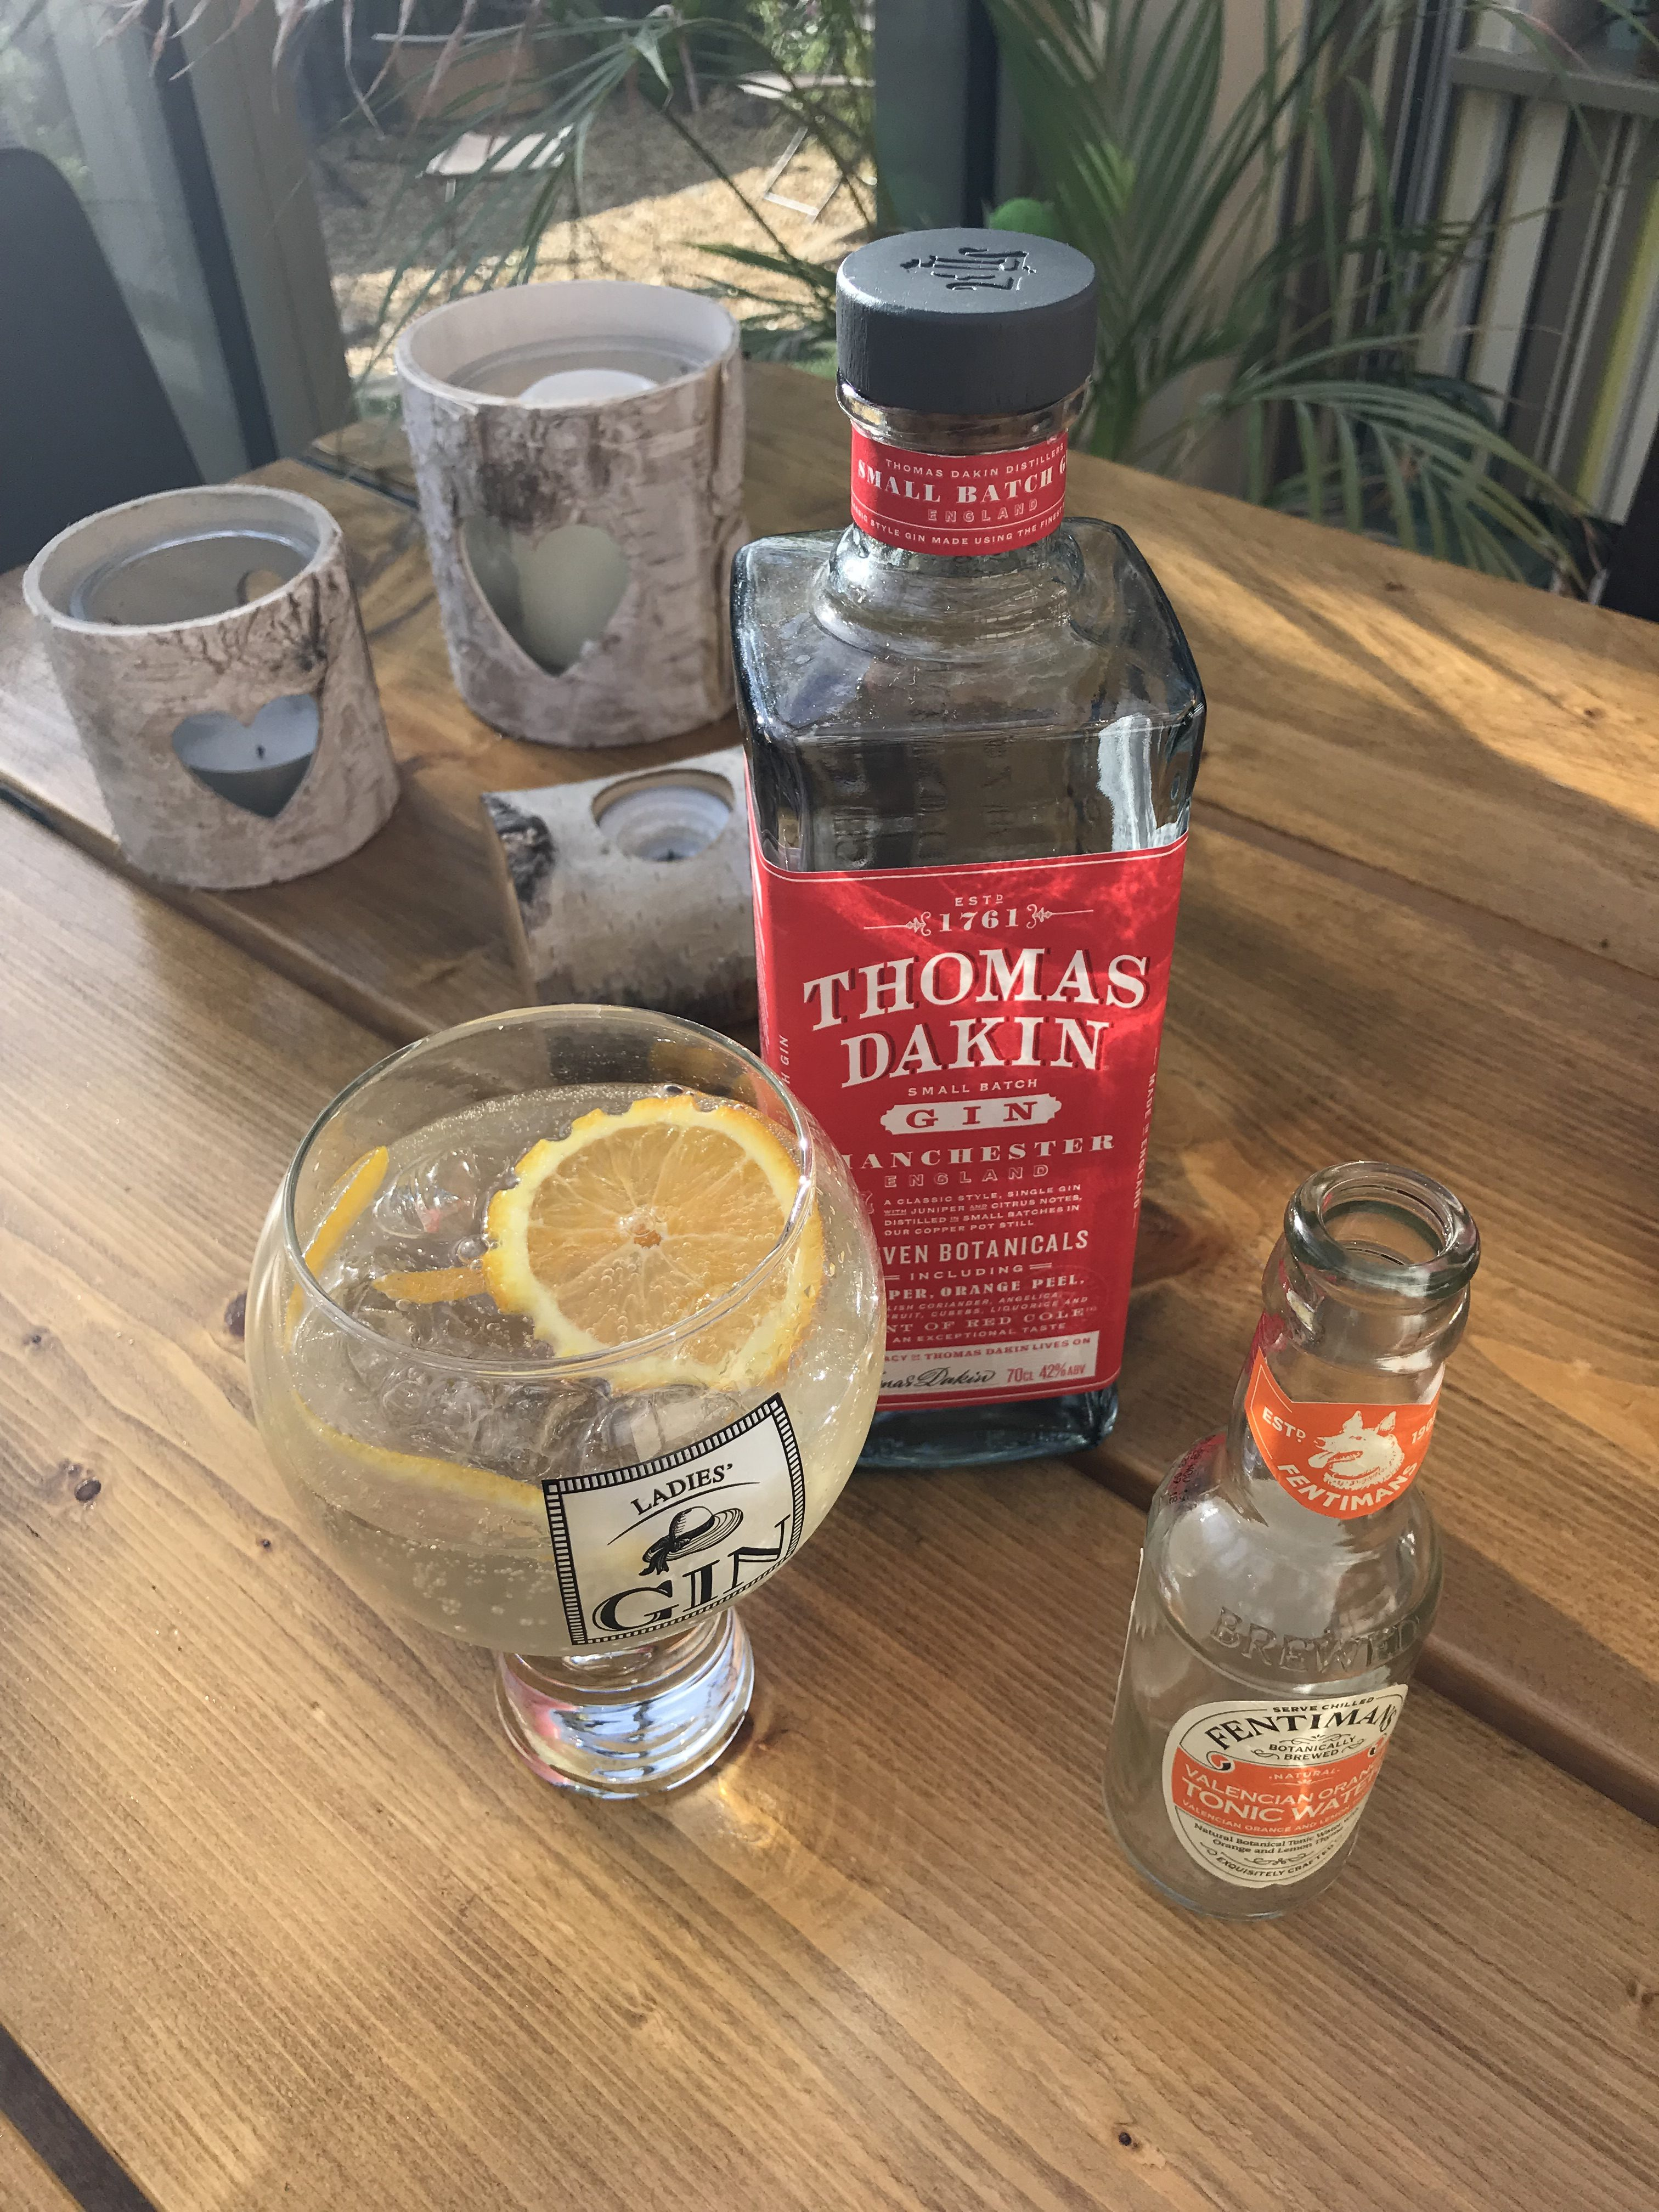 This is the Thomas Dakin Gin used with Fentimans to create a lovely drink.